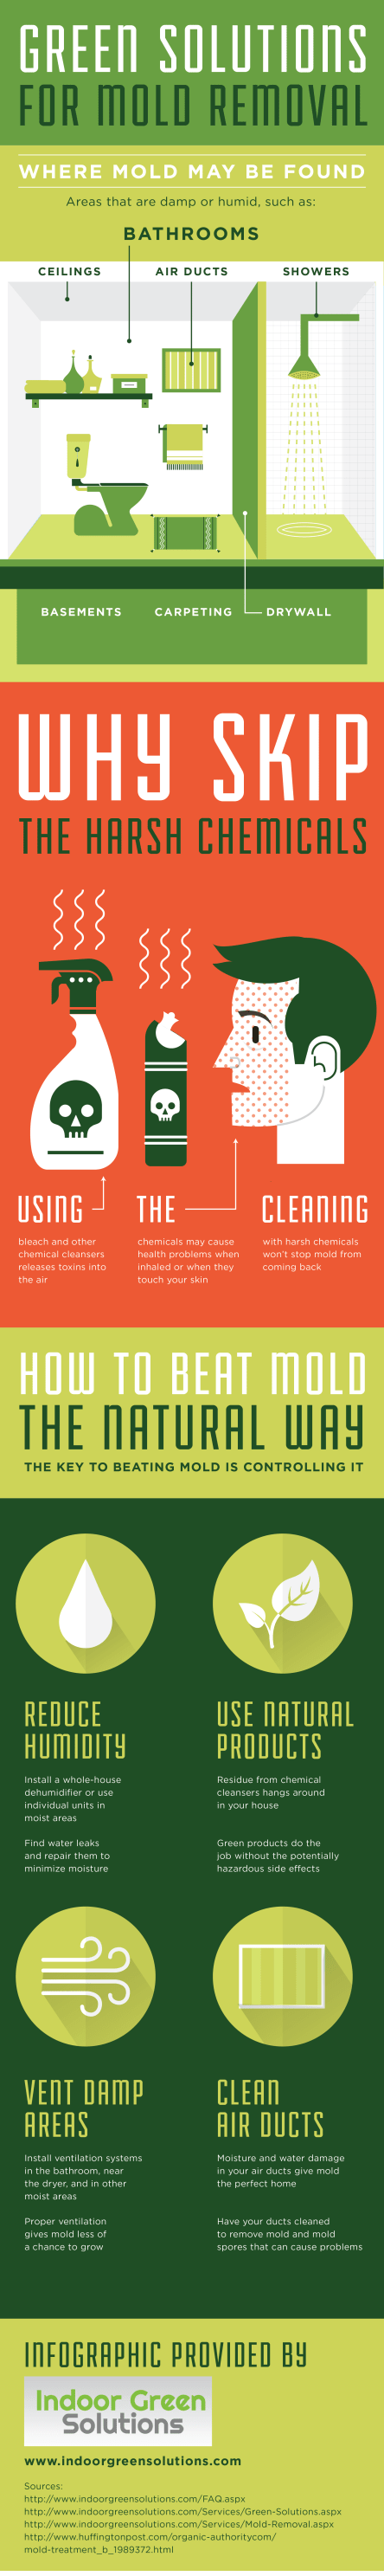 Green Solutions for Mold Removal